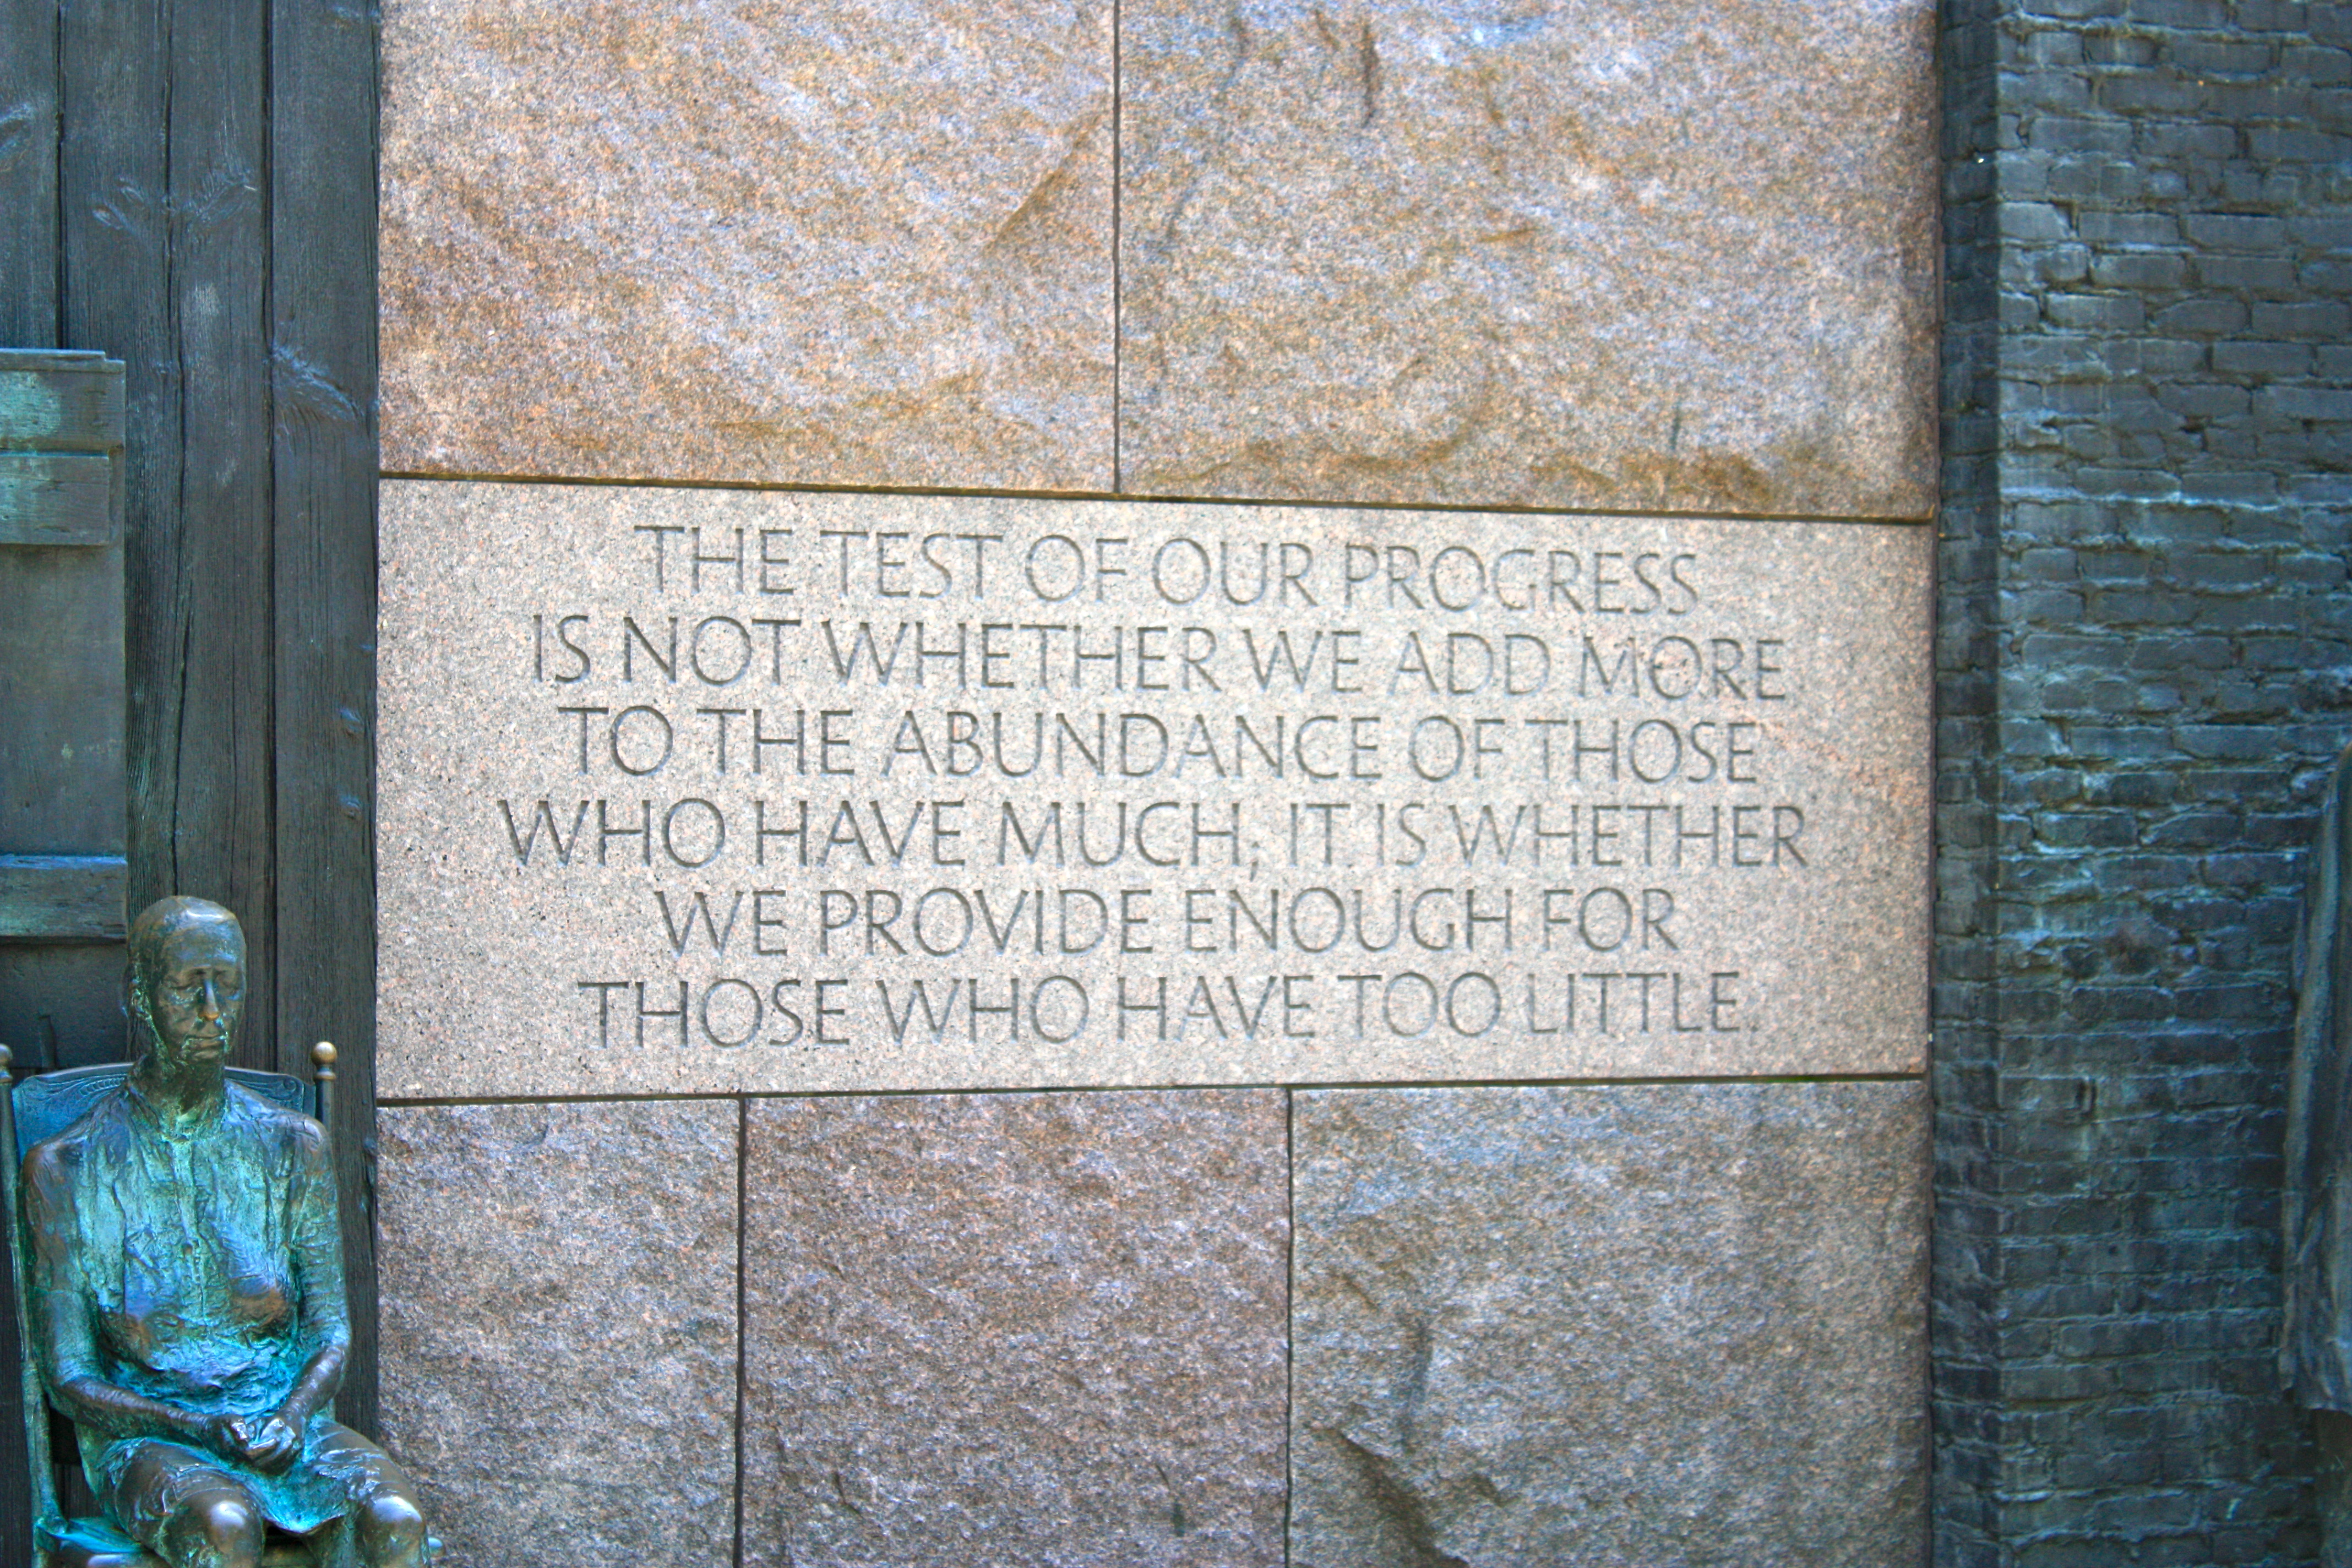 The test of our progress is whether we provide for those who have little